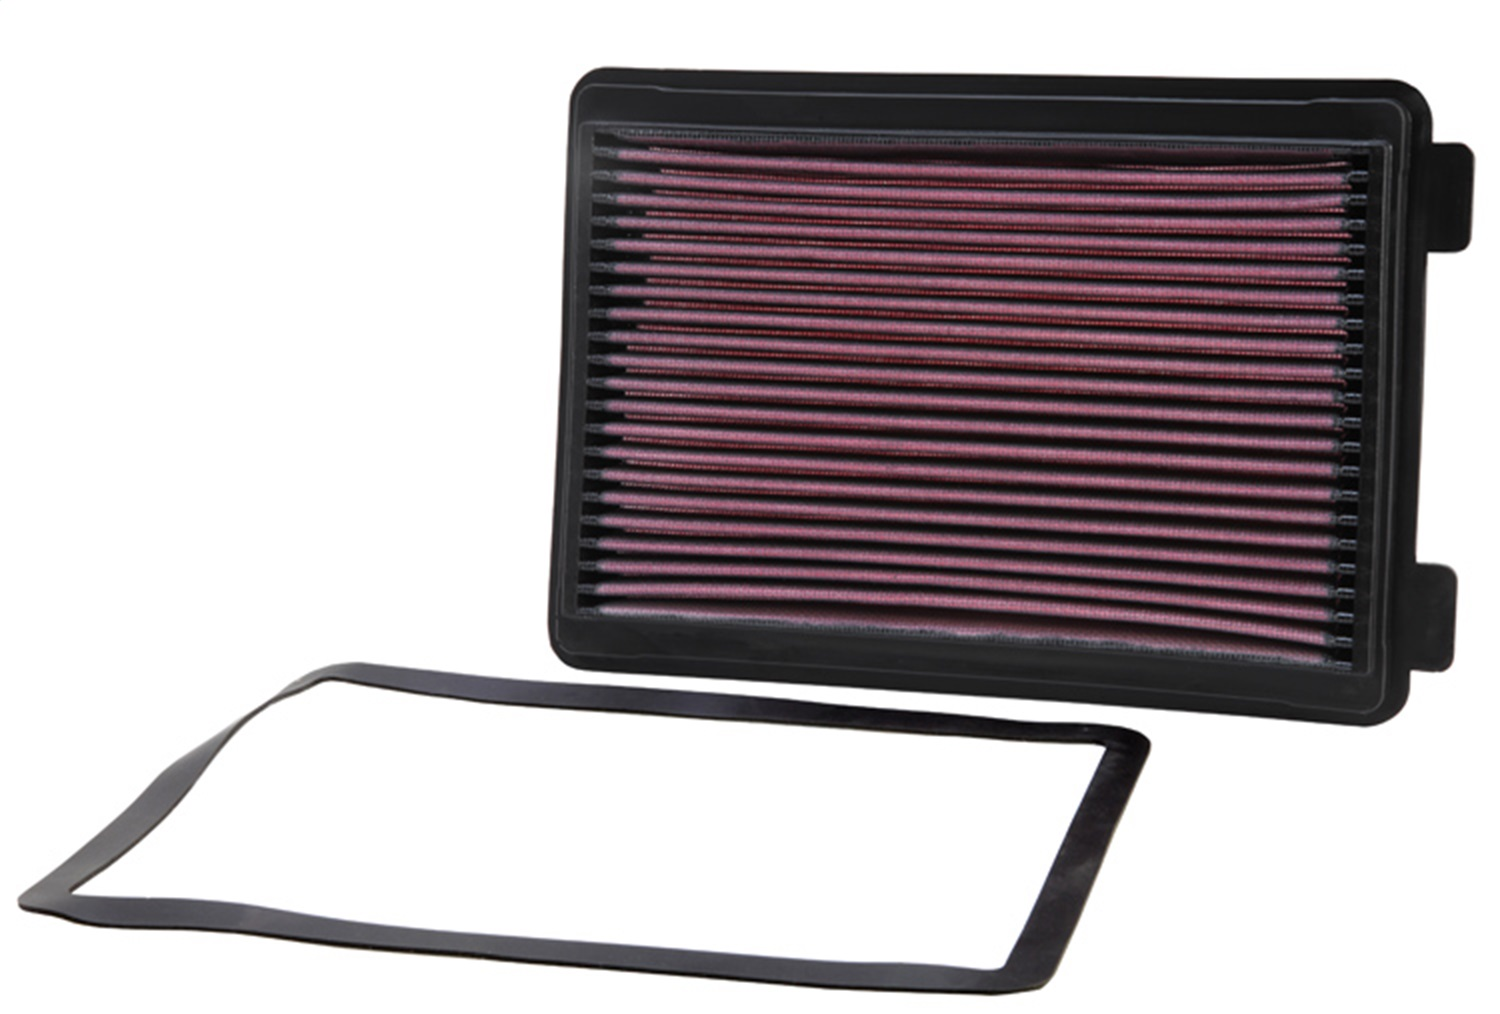 K&N Filters 33-2150 Air Filter Fits 98-07 Sable Taurus 33-2150